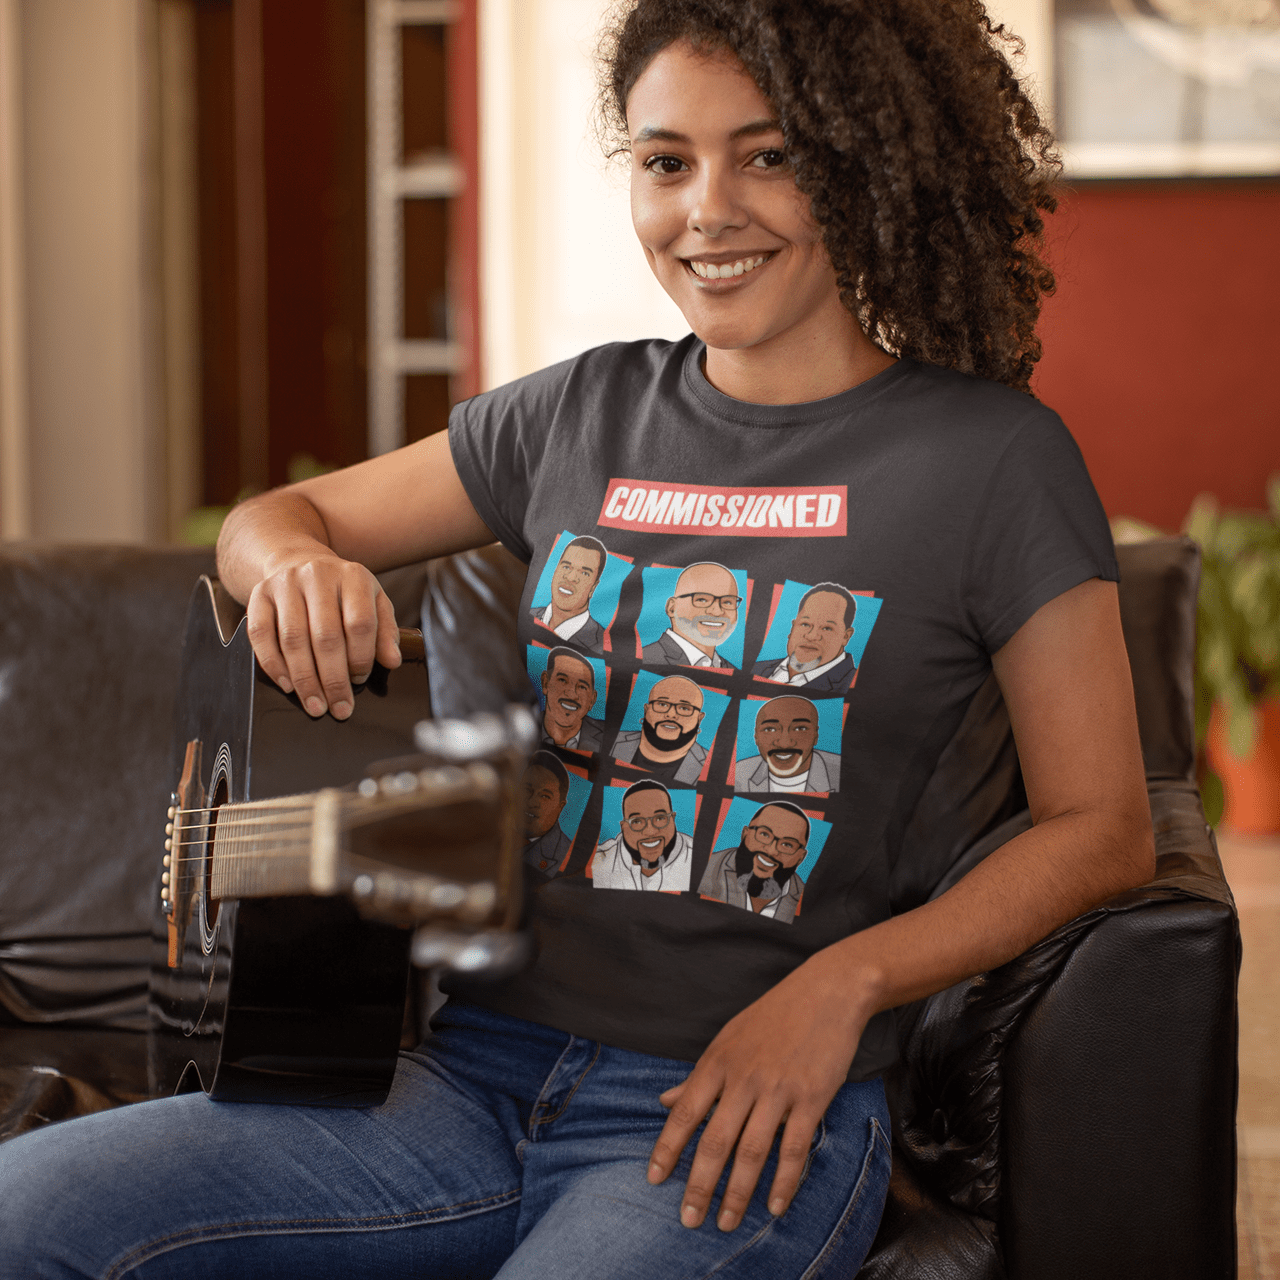 commissioned-will-you-be-ready-girl-black-shirt